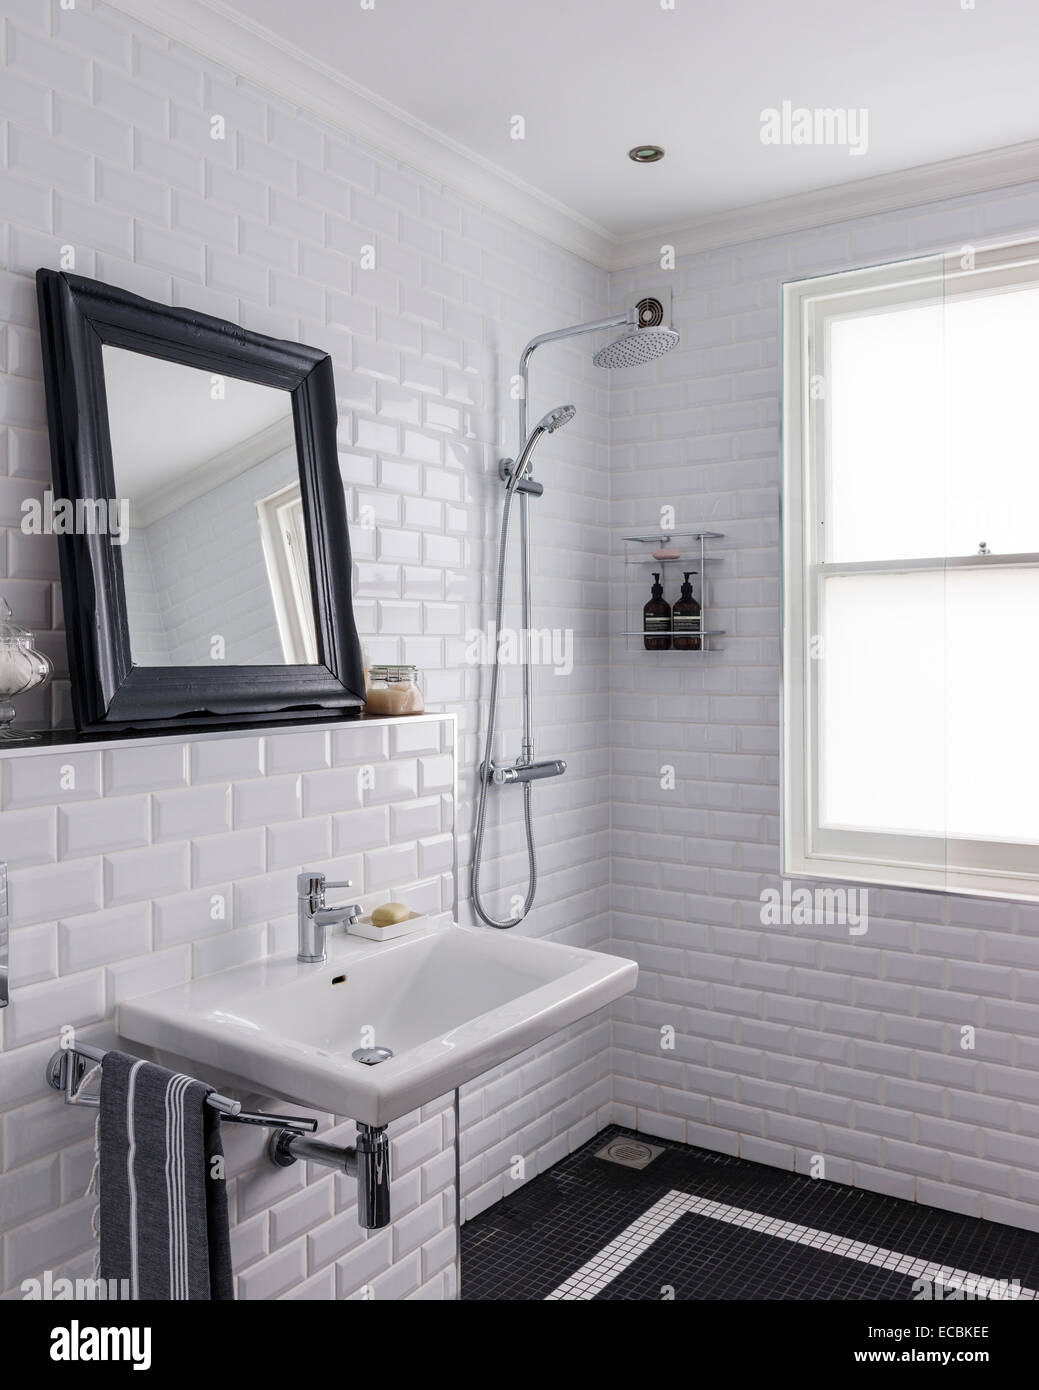 Wet room stock photos wet room stock images alamy wet room with glossy white metro tiles and shower by aqualisa stock image dailygadgetfo Image collections